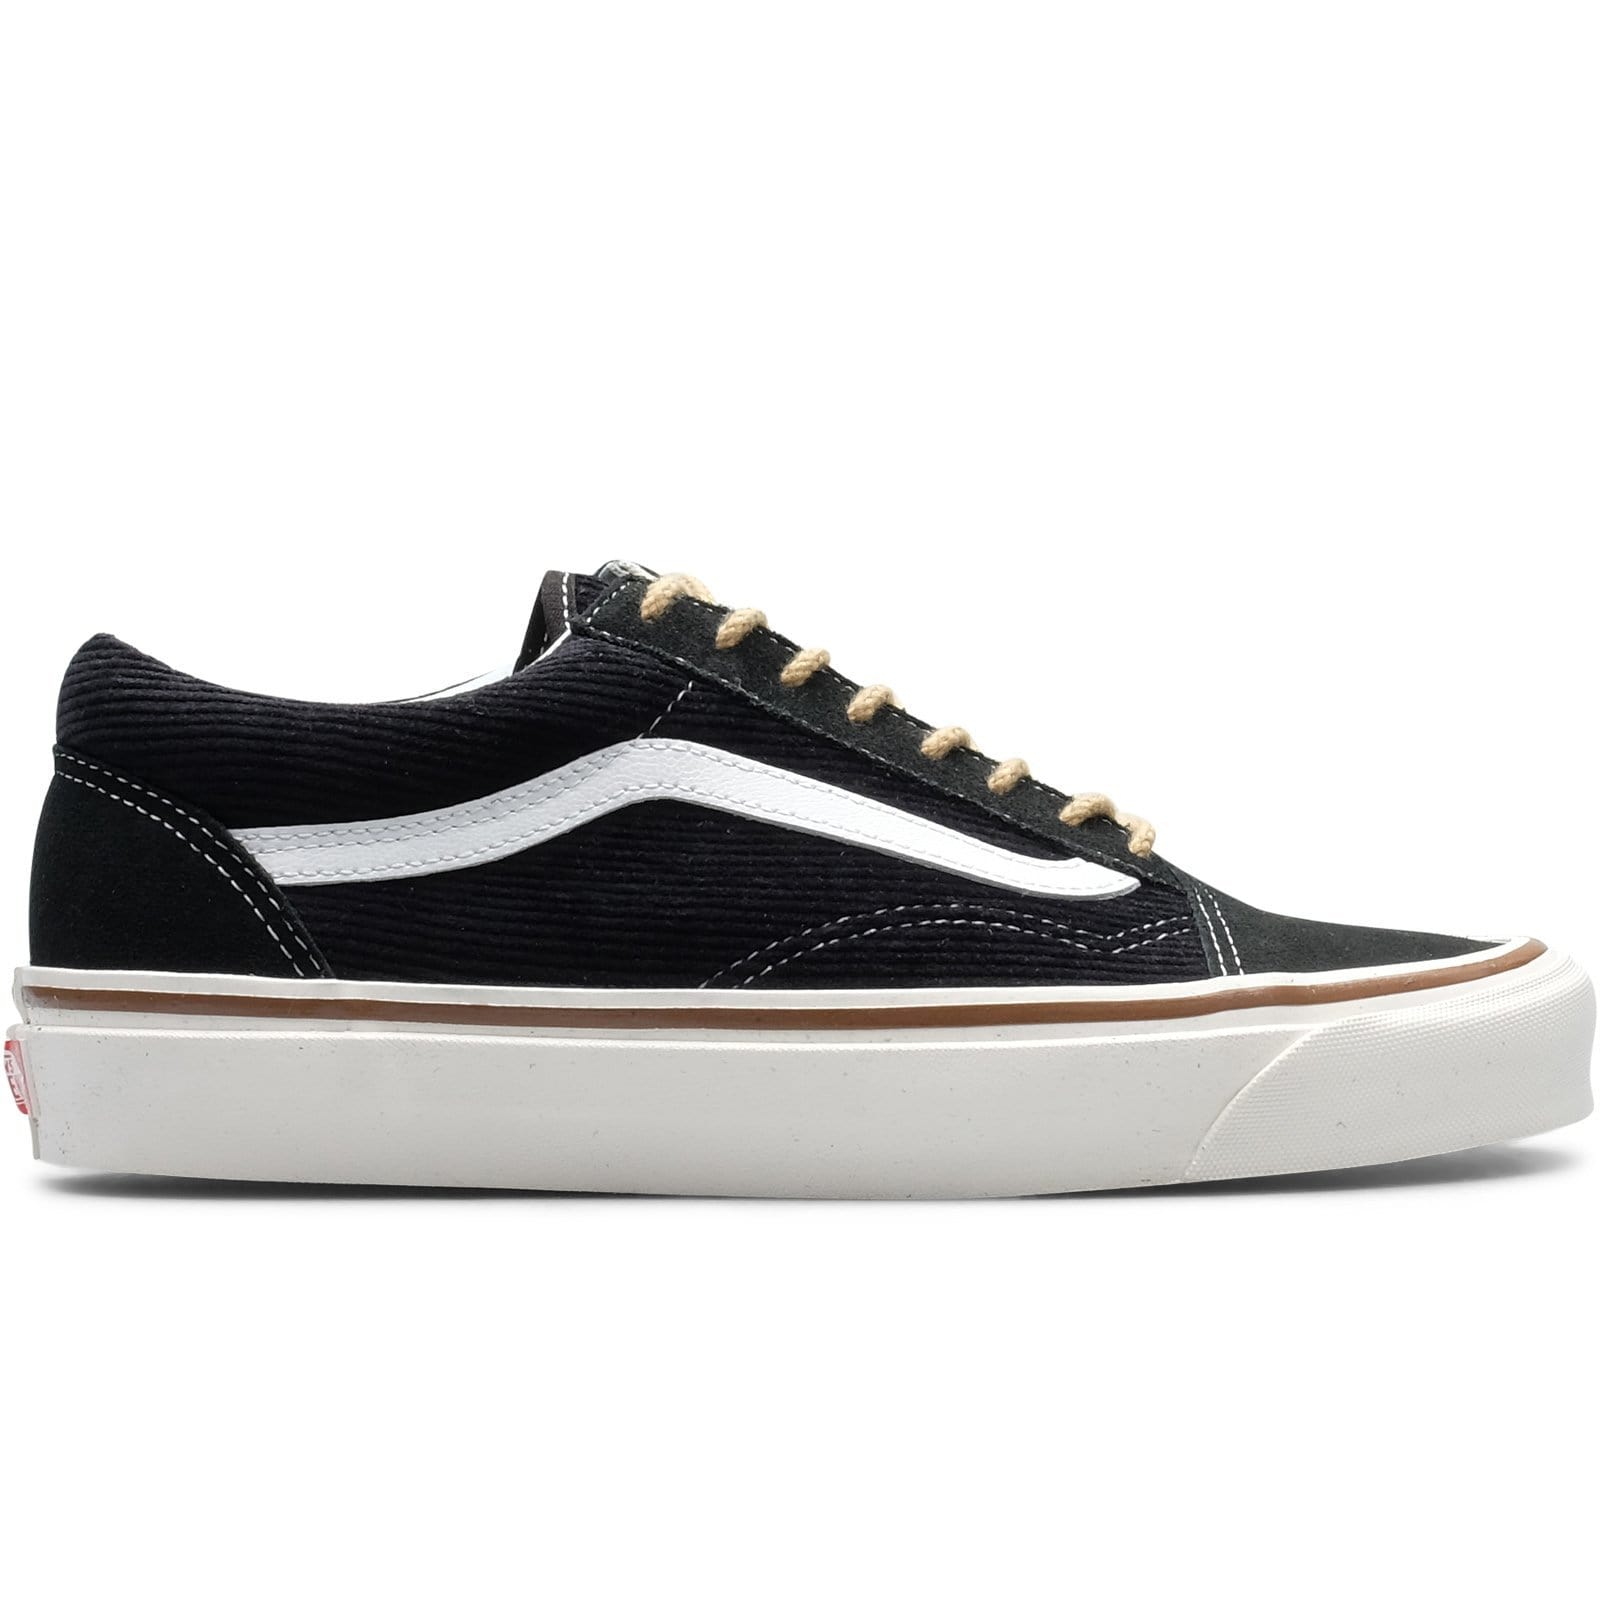 17e9f5c722 Vault by Vans OLD SKOOL 36 DX (suede corduroy) OG Black